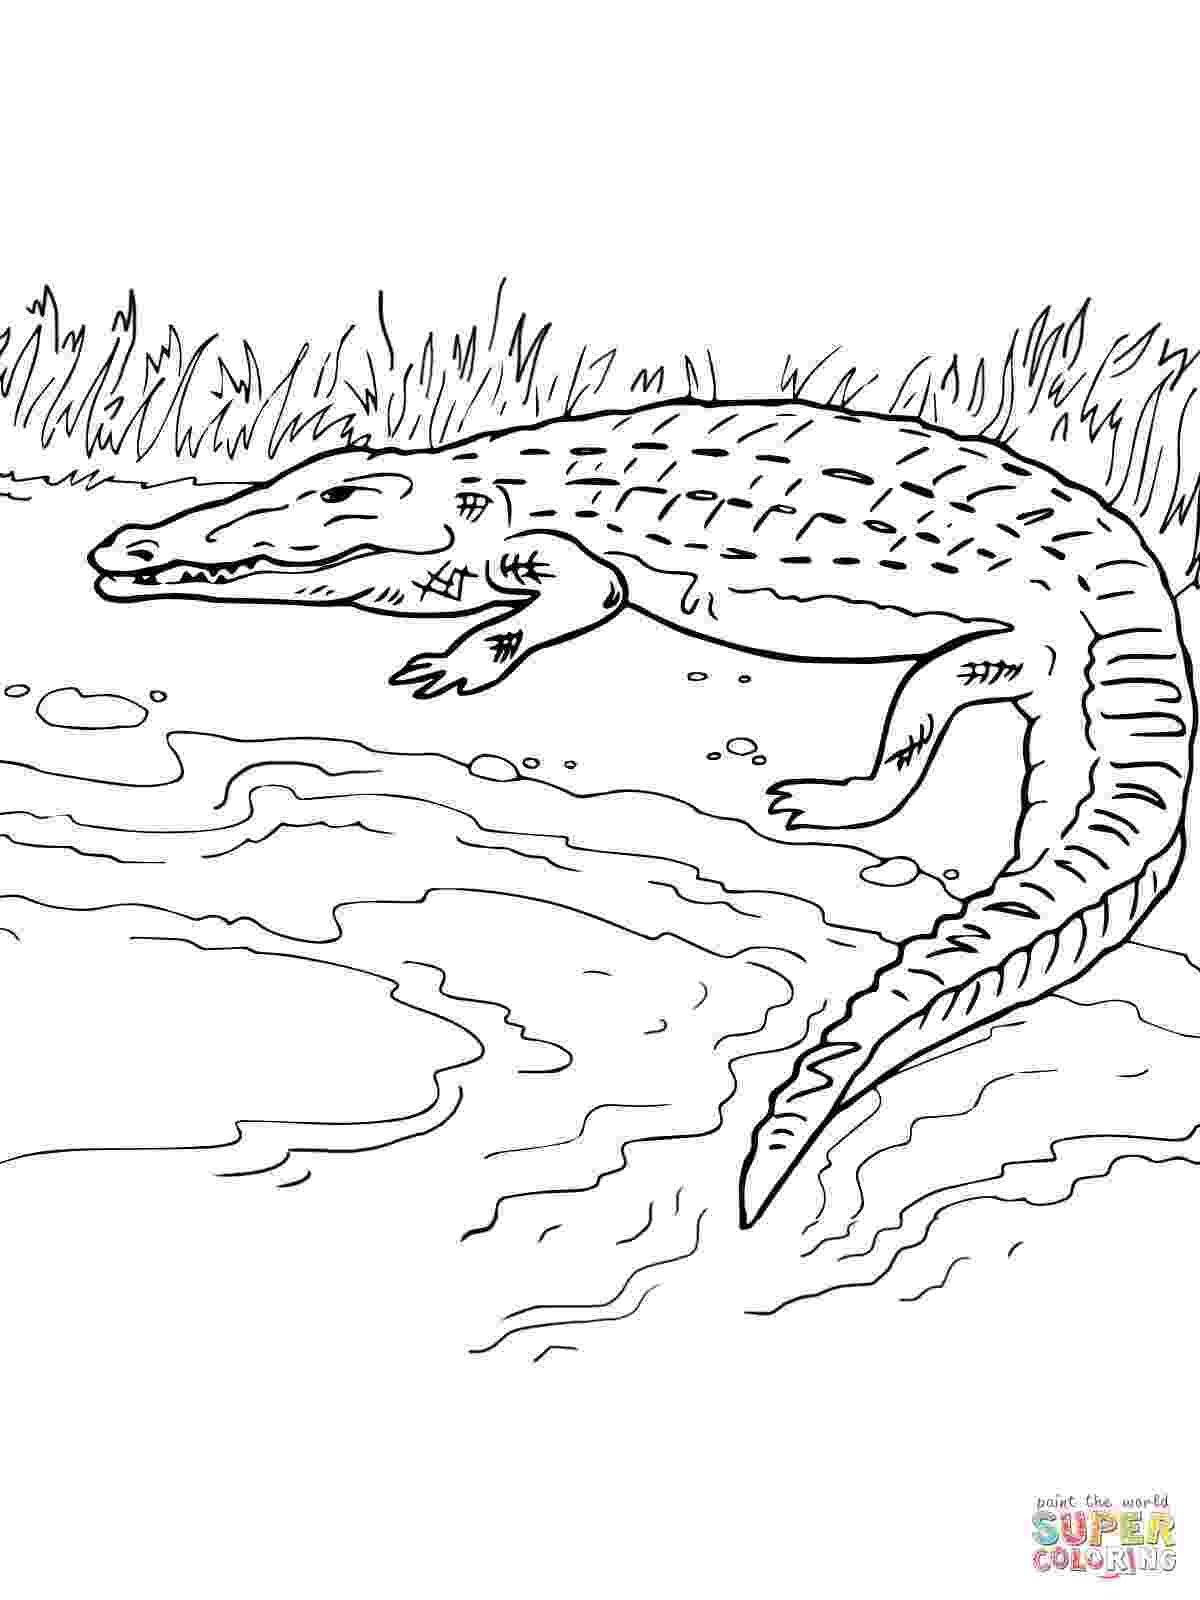 river coloring pages printable river coloring pages download and print river coloring pages river pages printable coloring